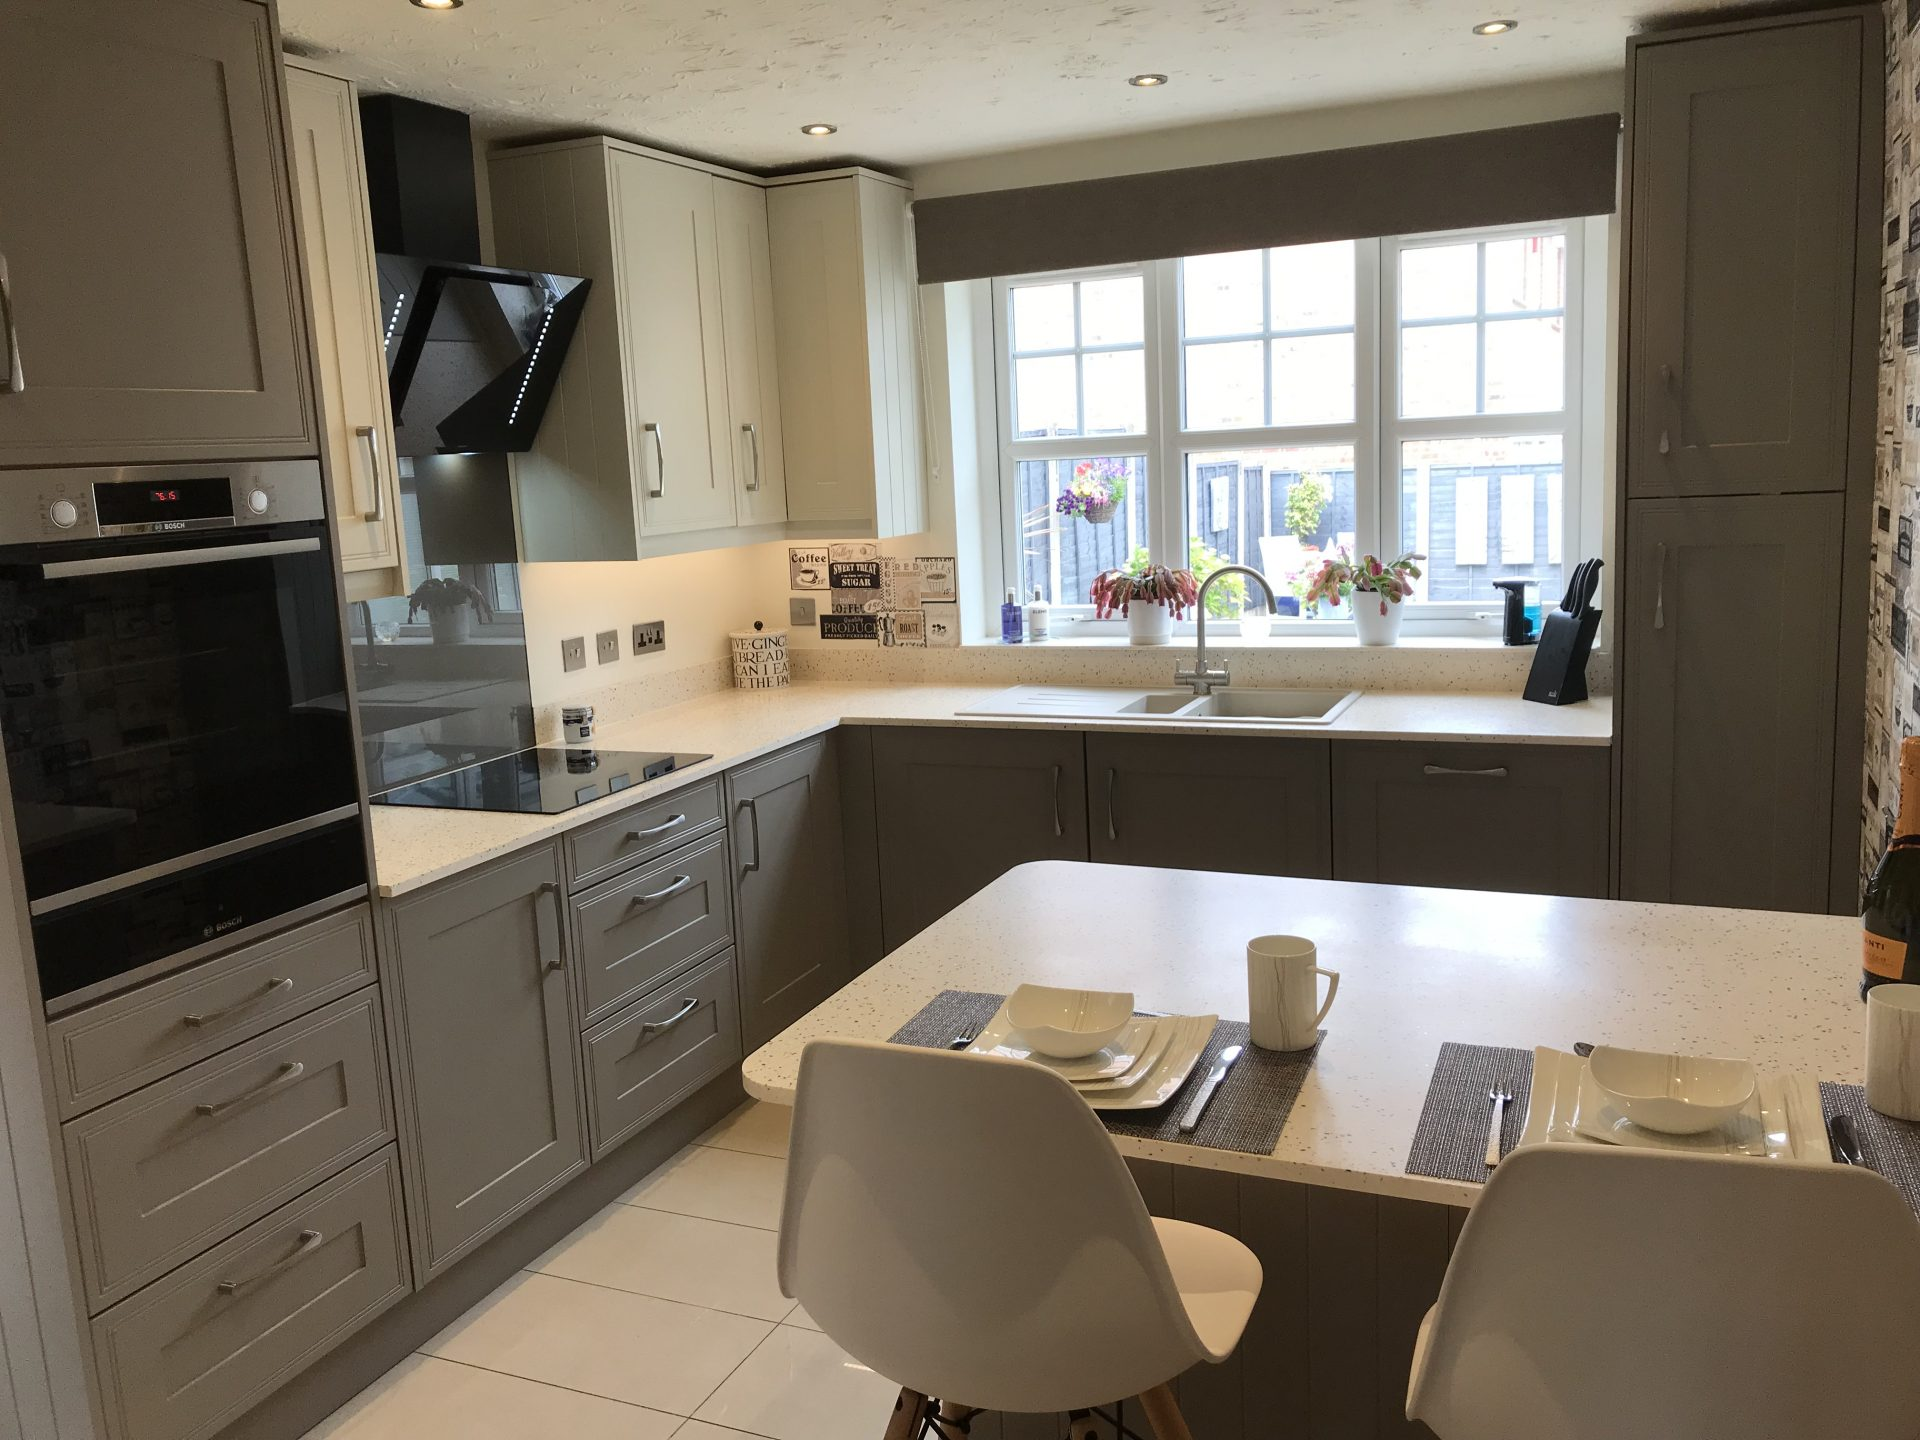 Classic Kitchen with solid acrylic worktops - St Georges, Telford